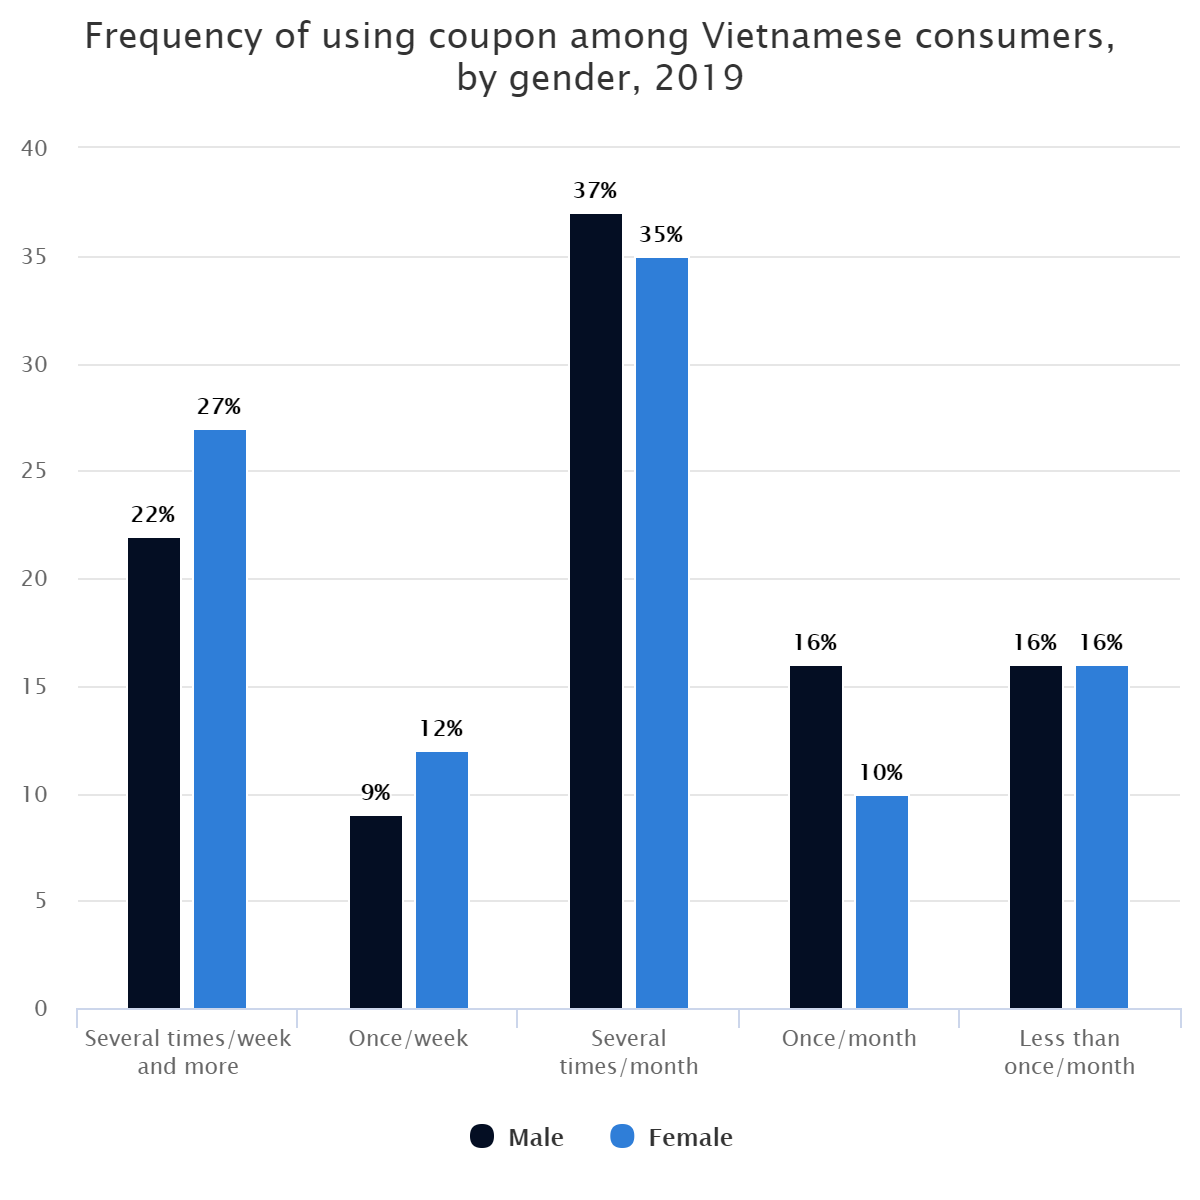 Frequency of using coupon among Vietnamese consumers, by gender, 2019